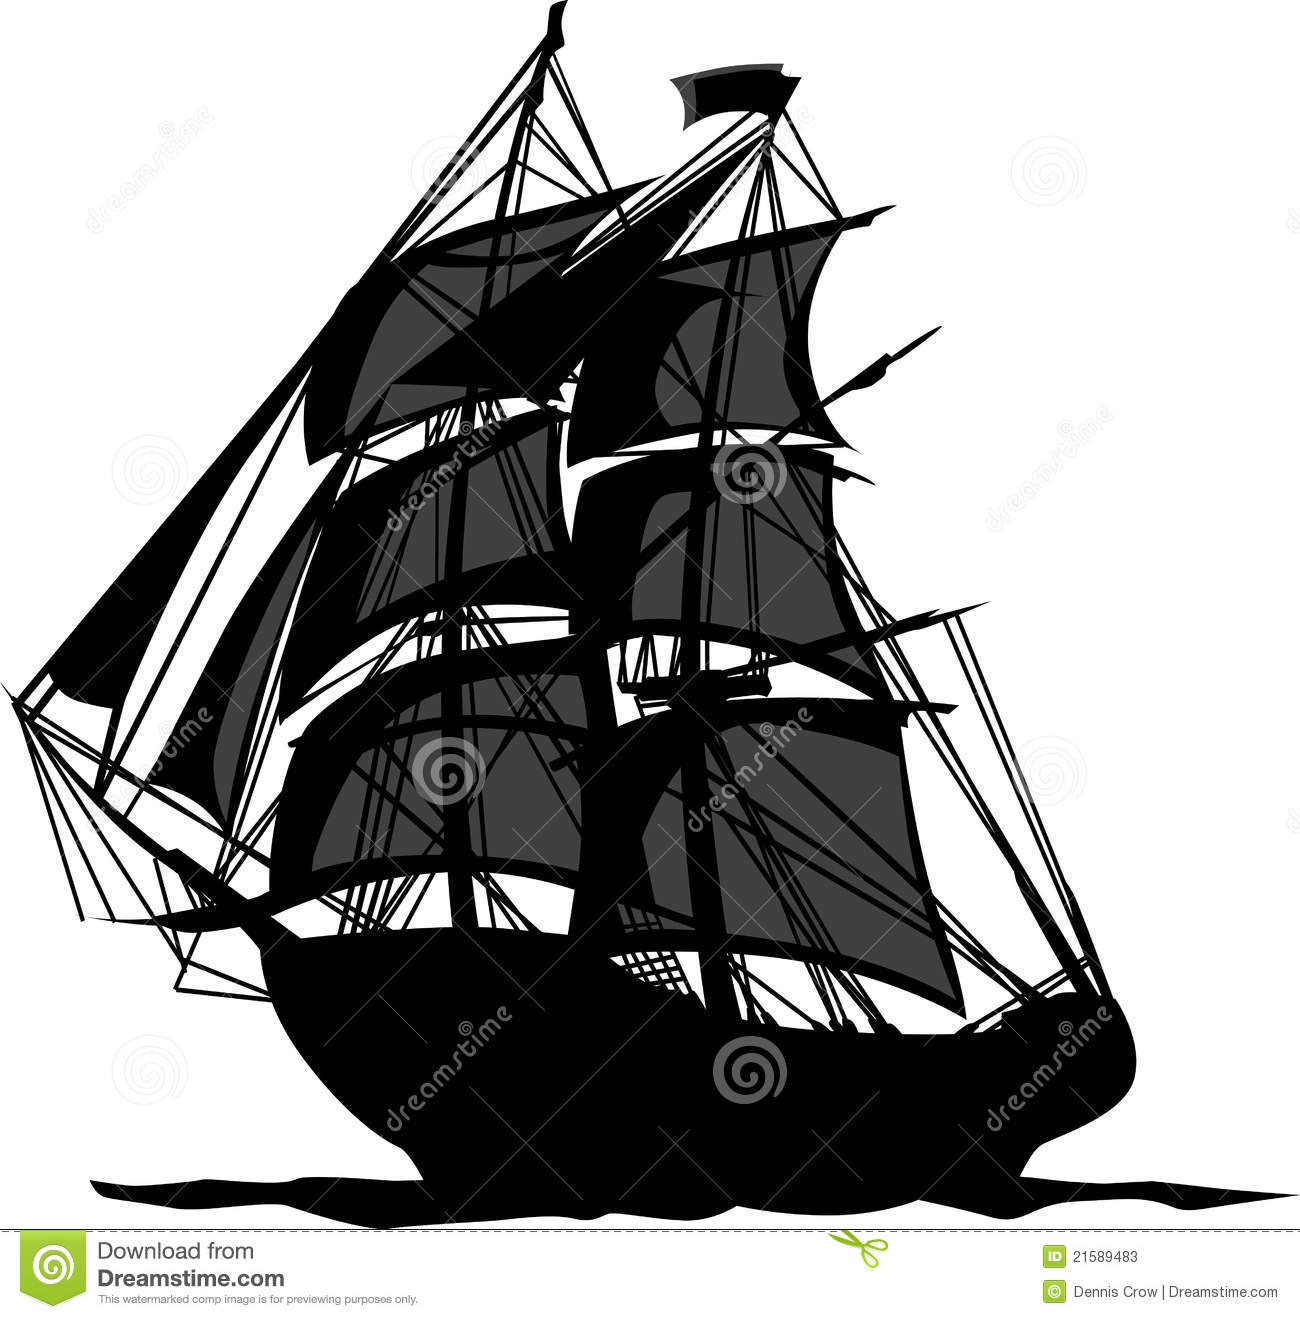 Sailing Pirate Ship With Sails Vector Graphic Image